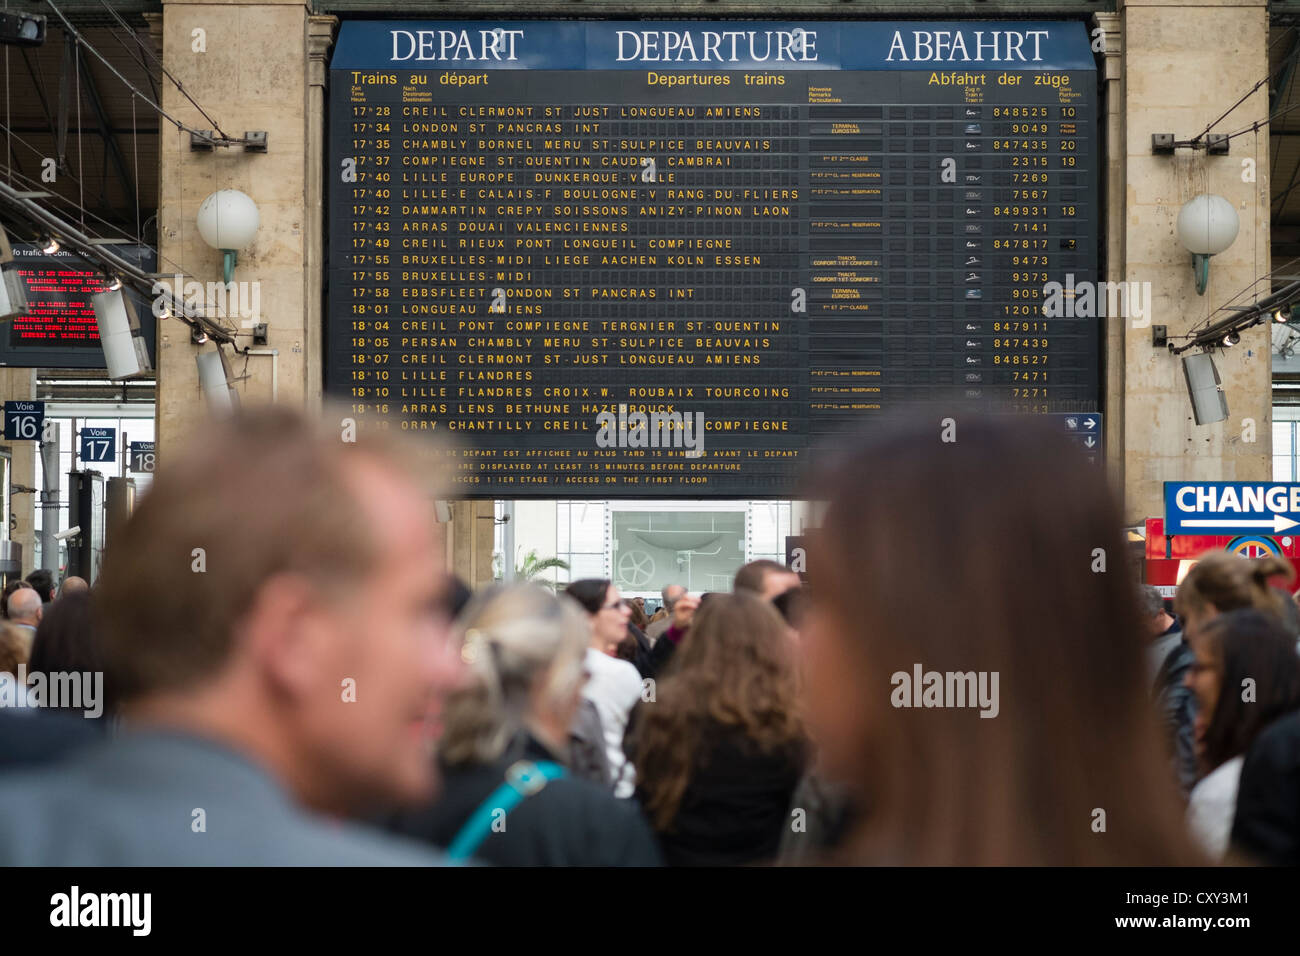 Detail of destinations on departures board and many passengers waiting for trains at Gare du Nord railway station - Stock Image